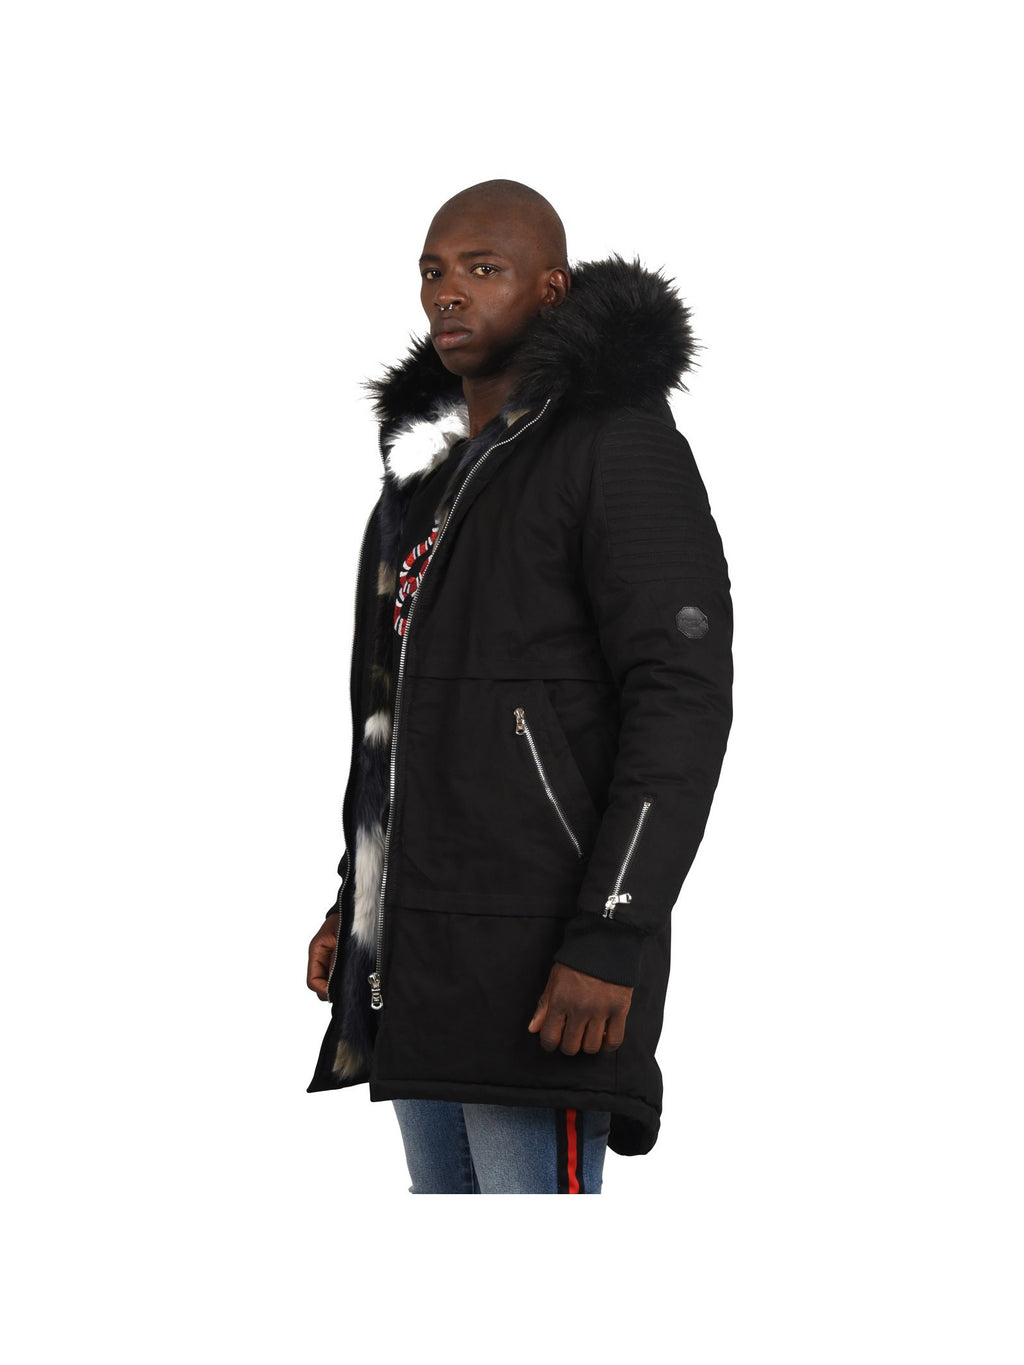 Men's Cotton Parka Jacket by Project X Paris - Brit Boss